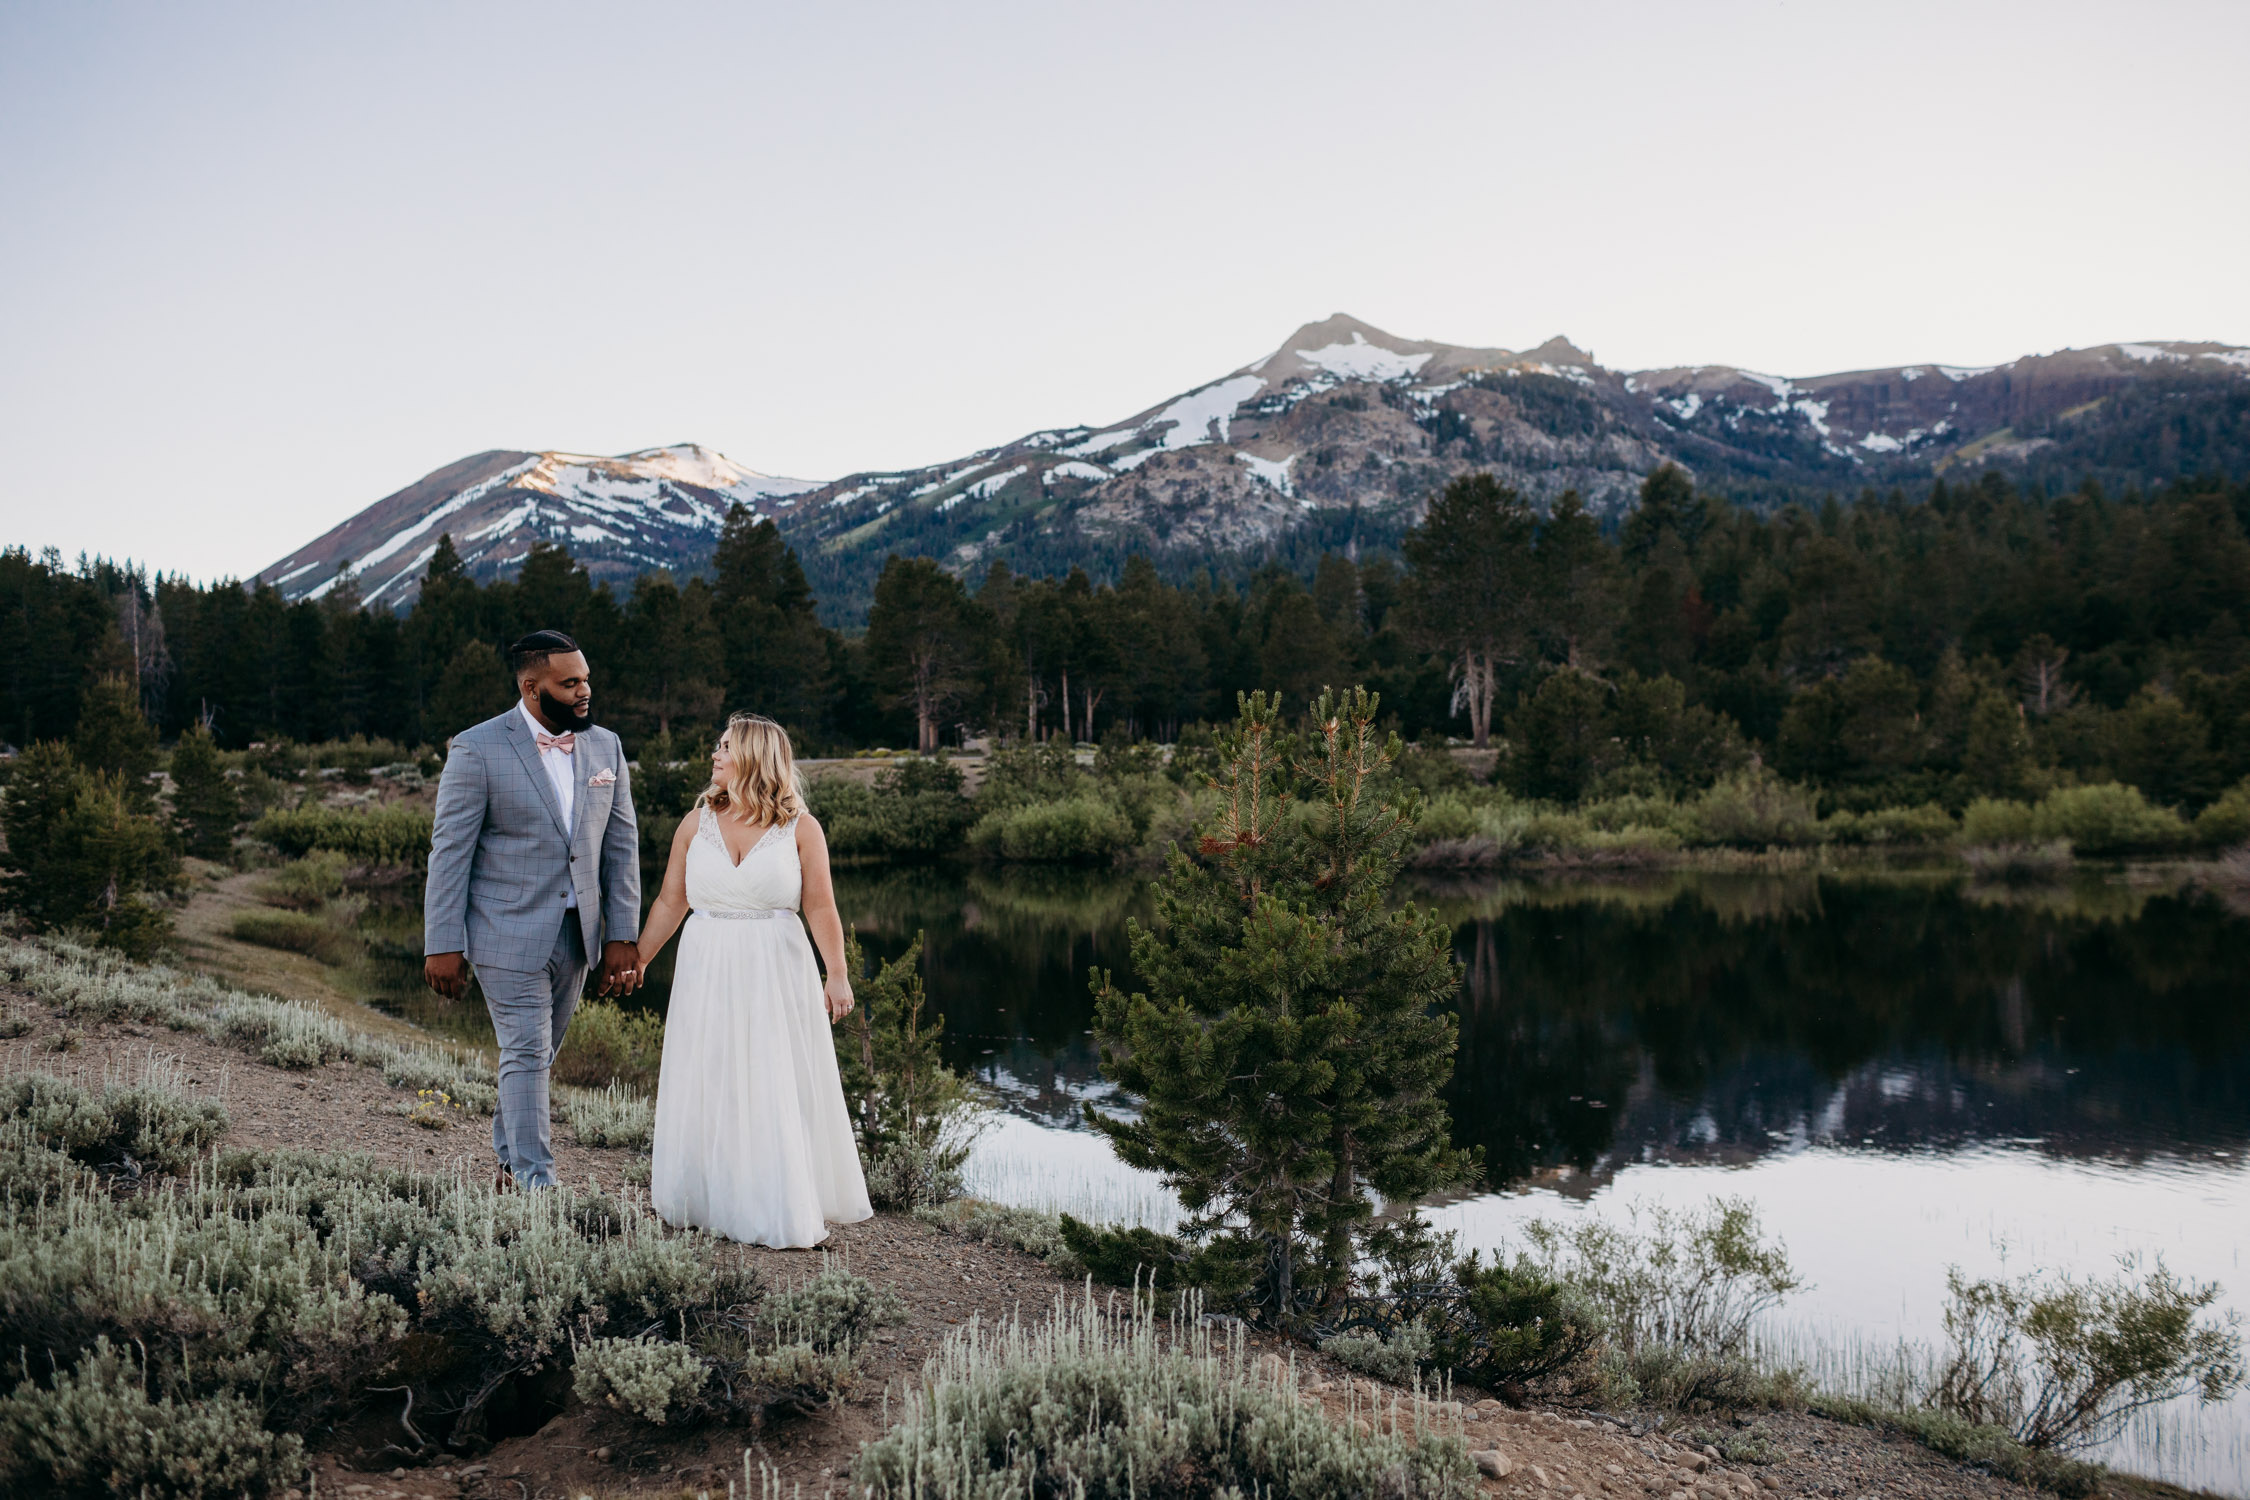 tahoe elopement at hope valley bride and groom walking by the lake